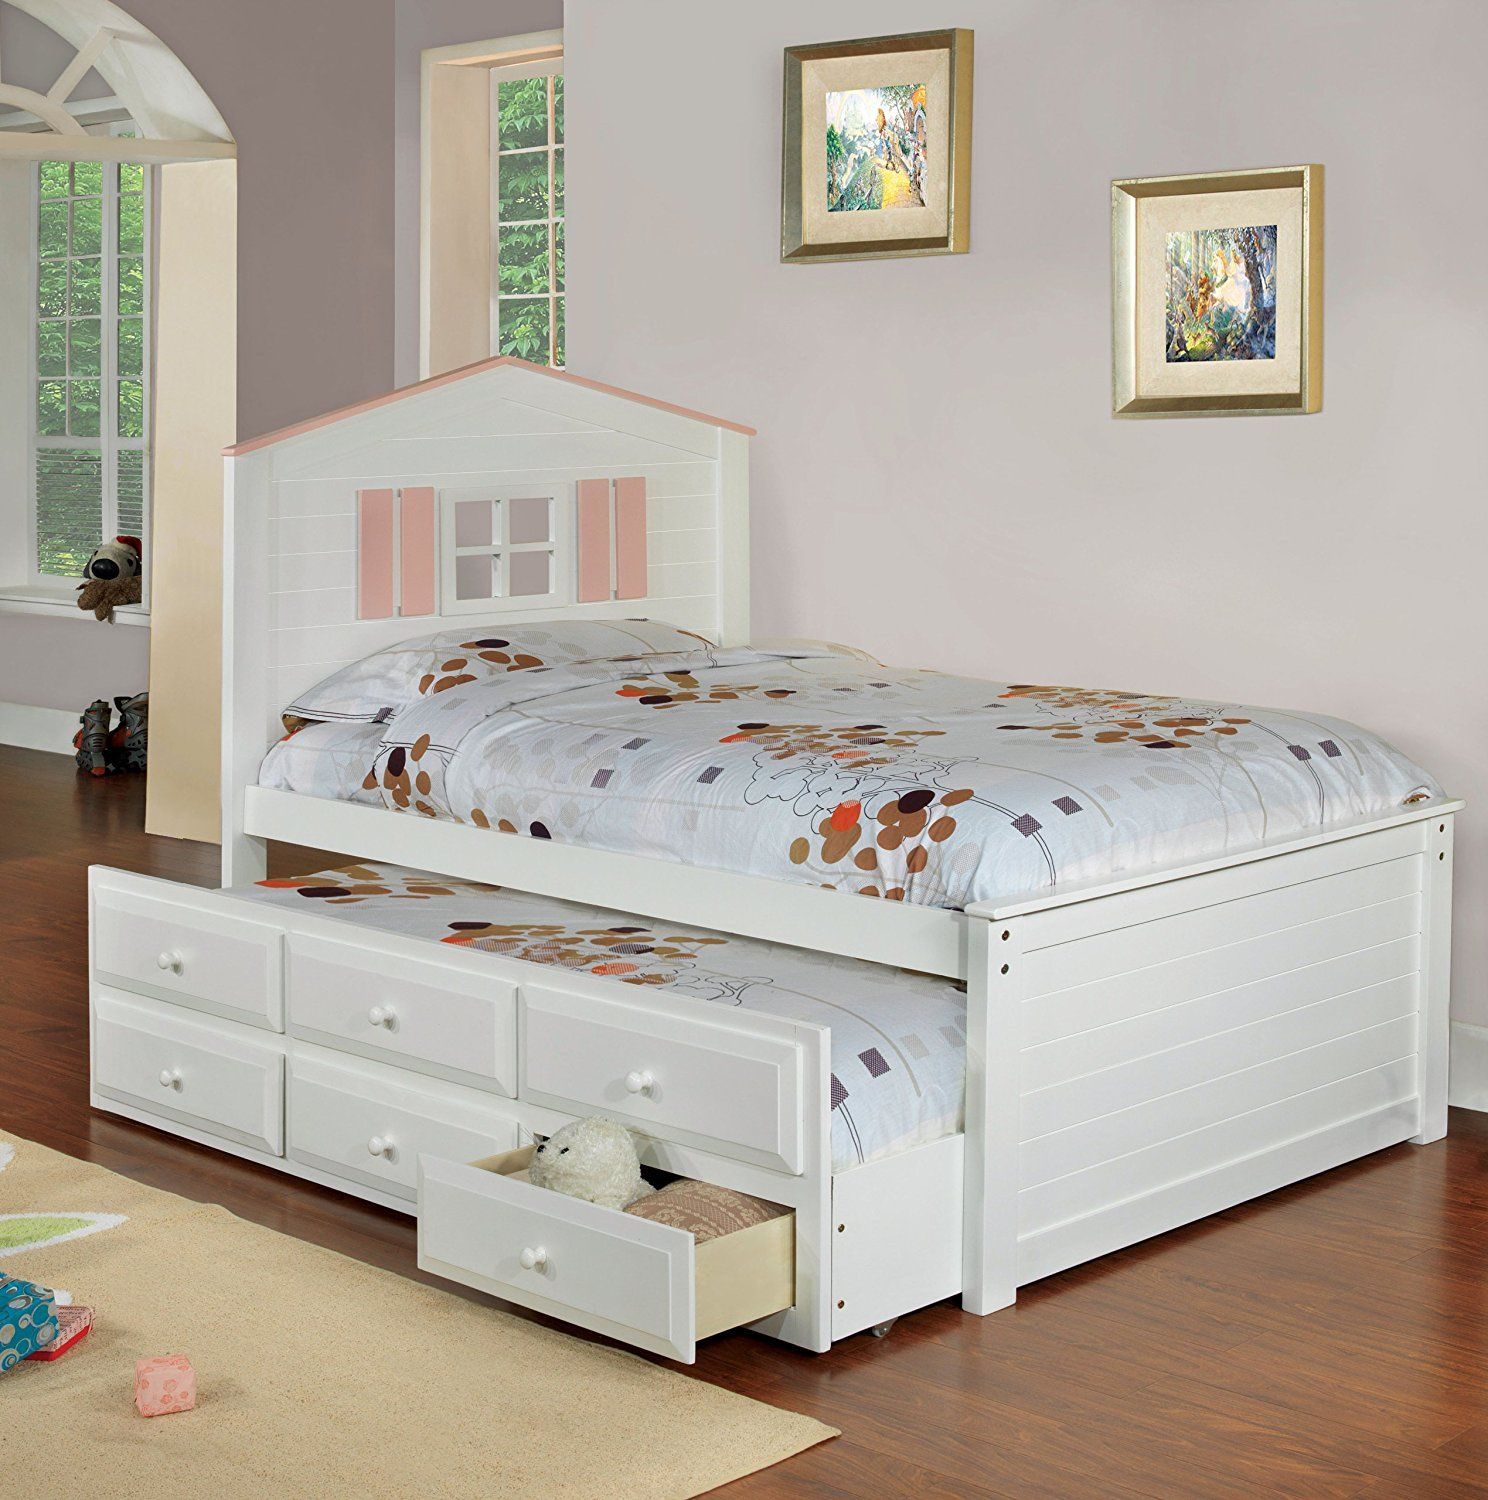 More Click Beds With Drawers Underneath Size Bed Colored